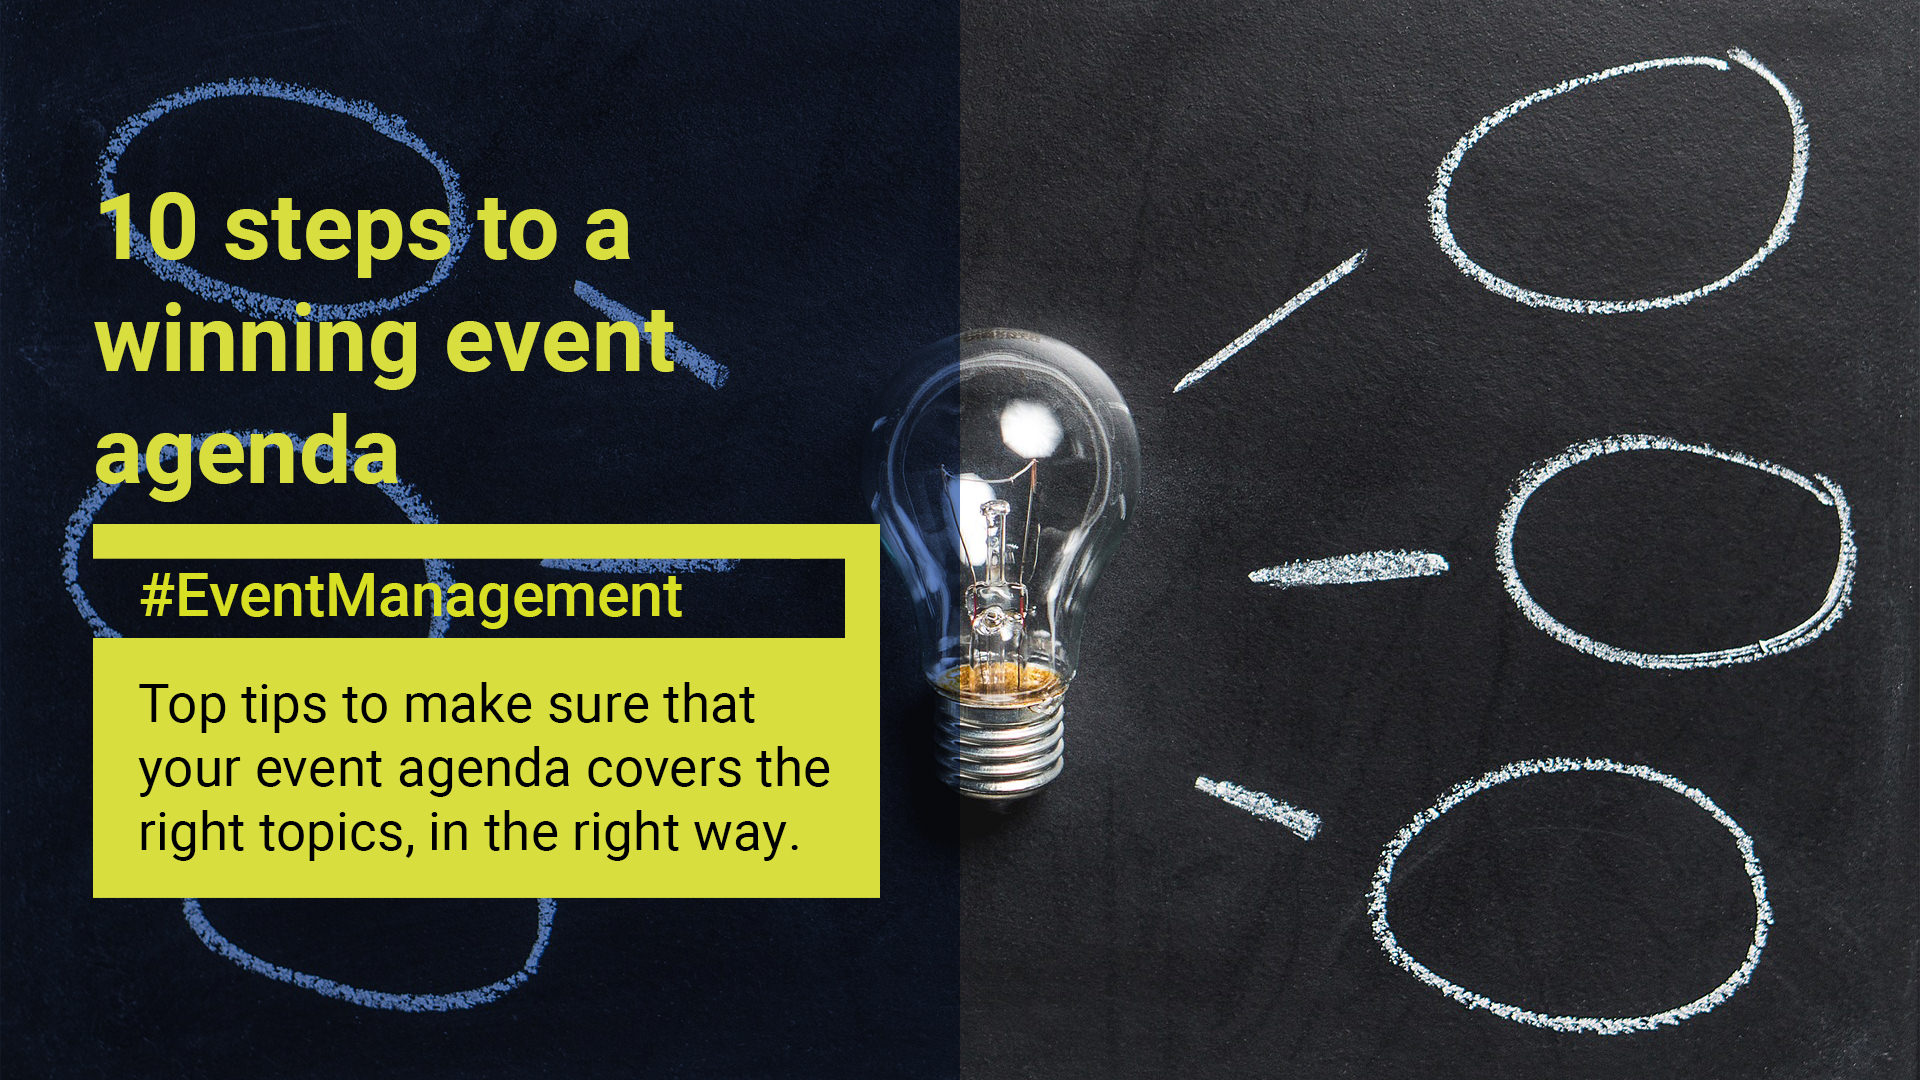 10 steps to a winning event agenda